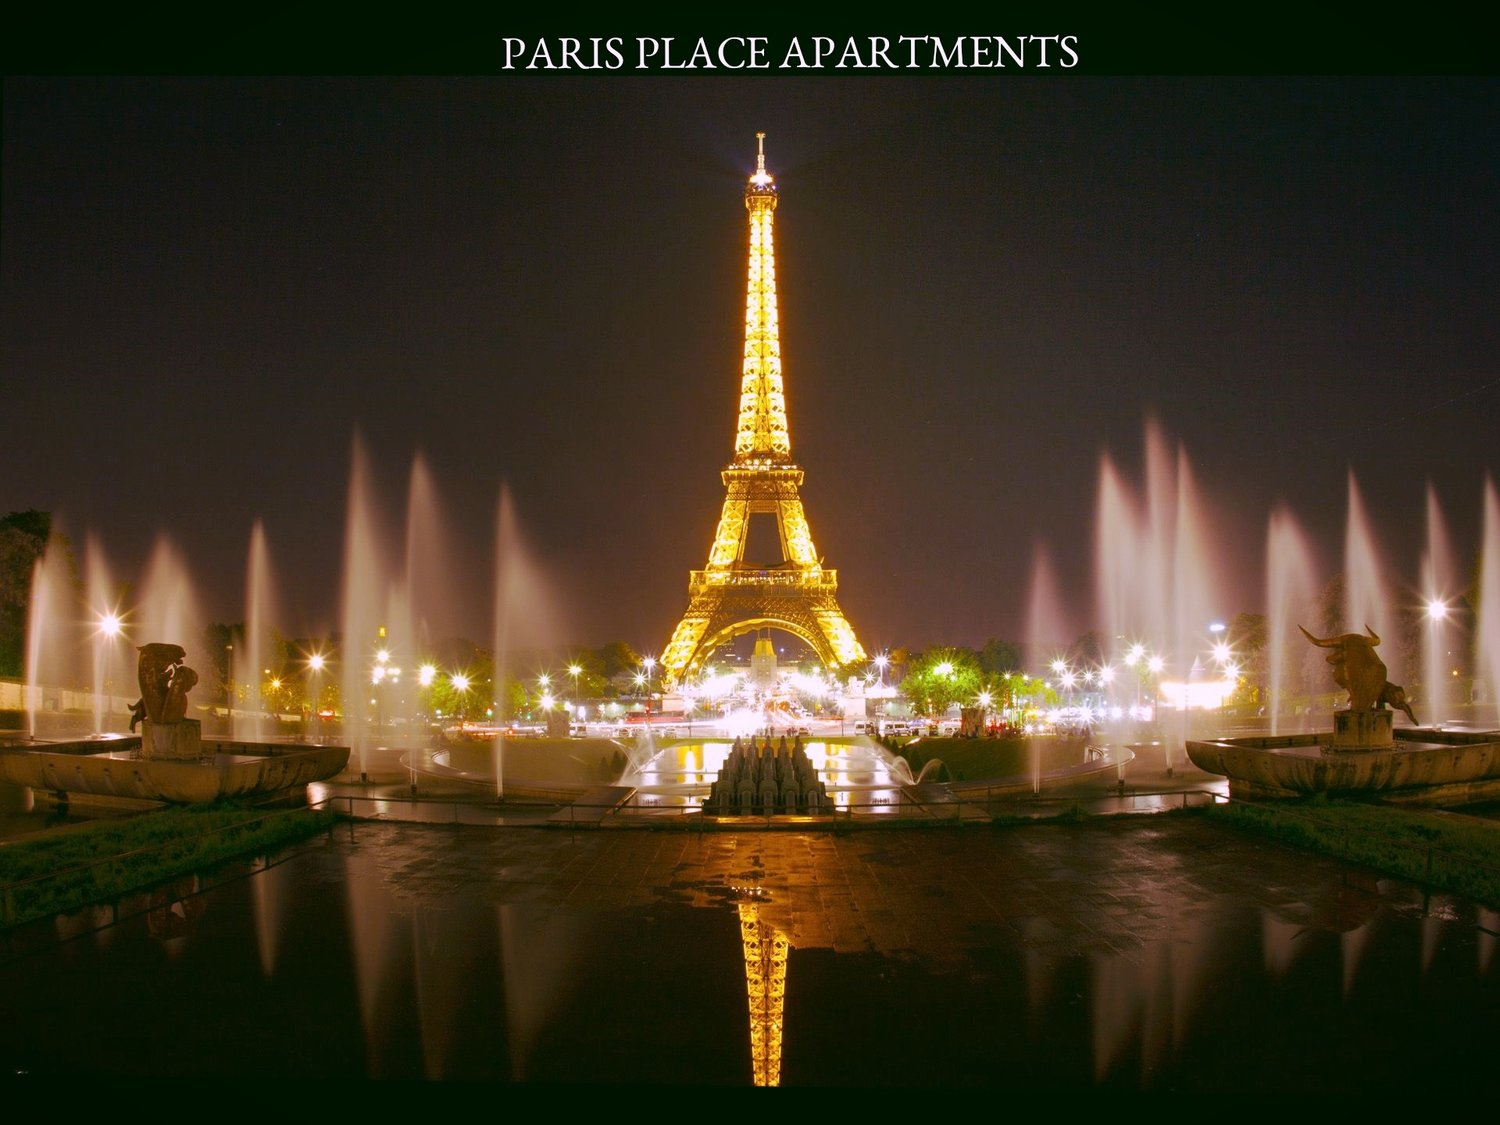 paris place apartments